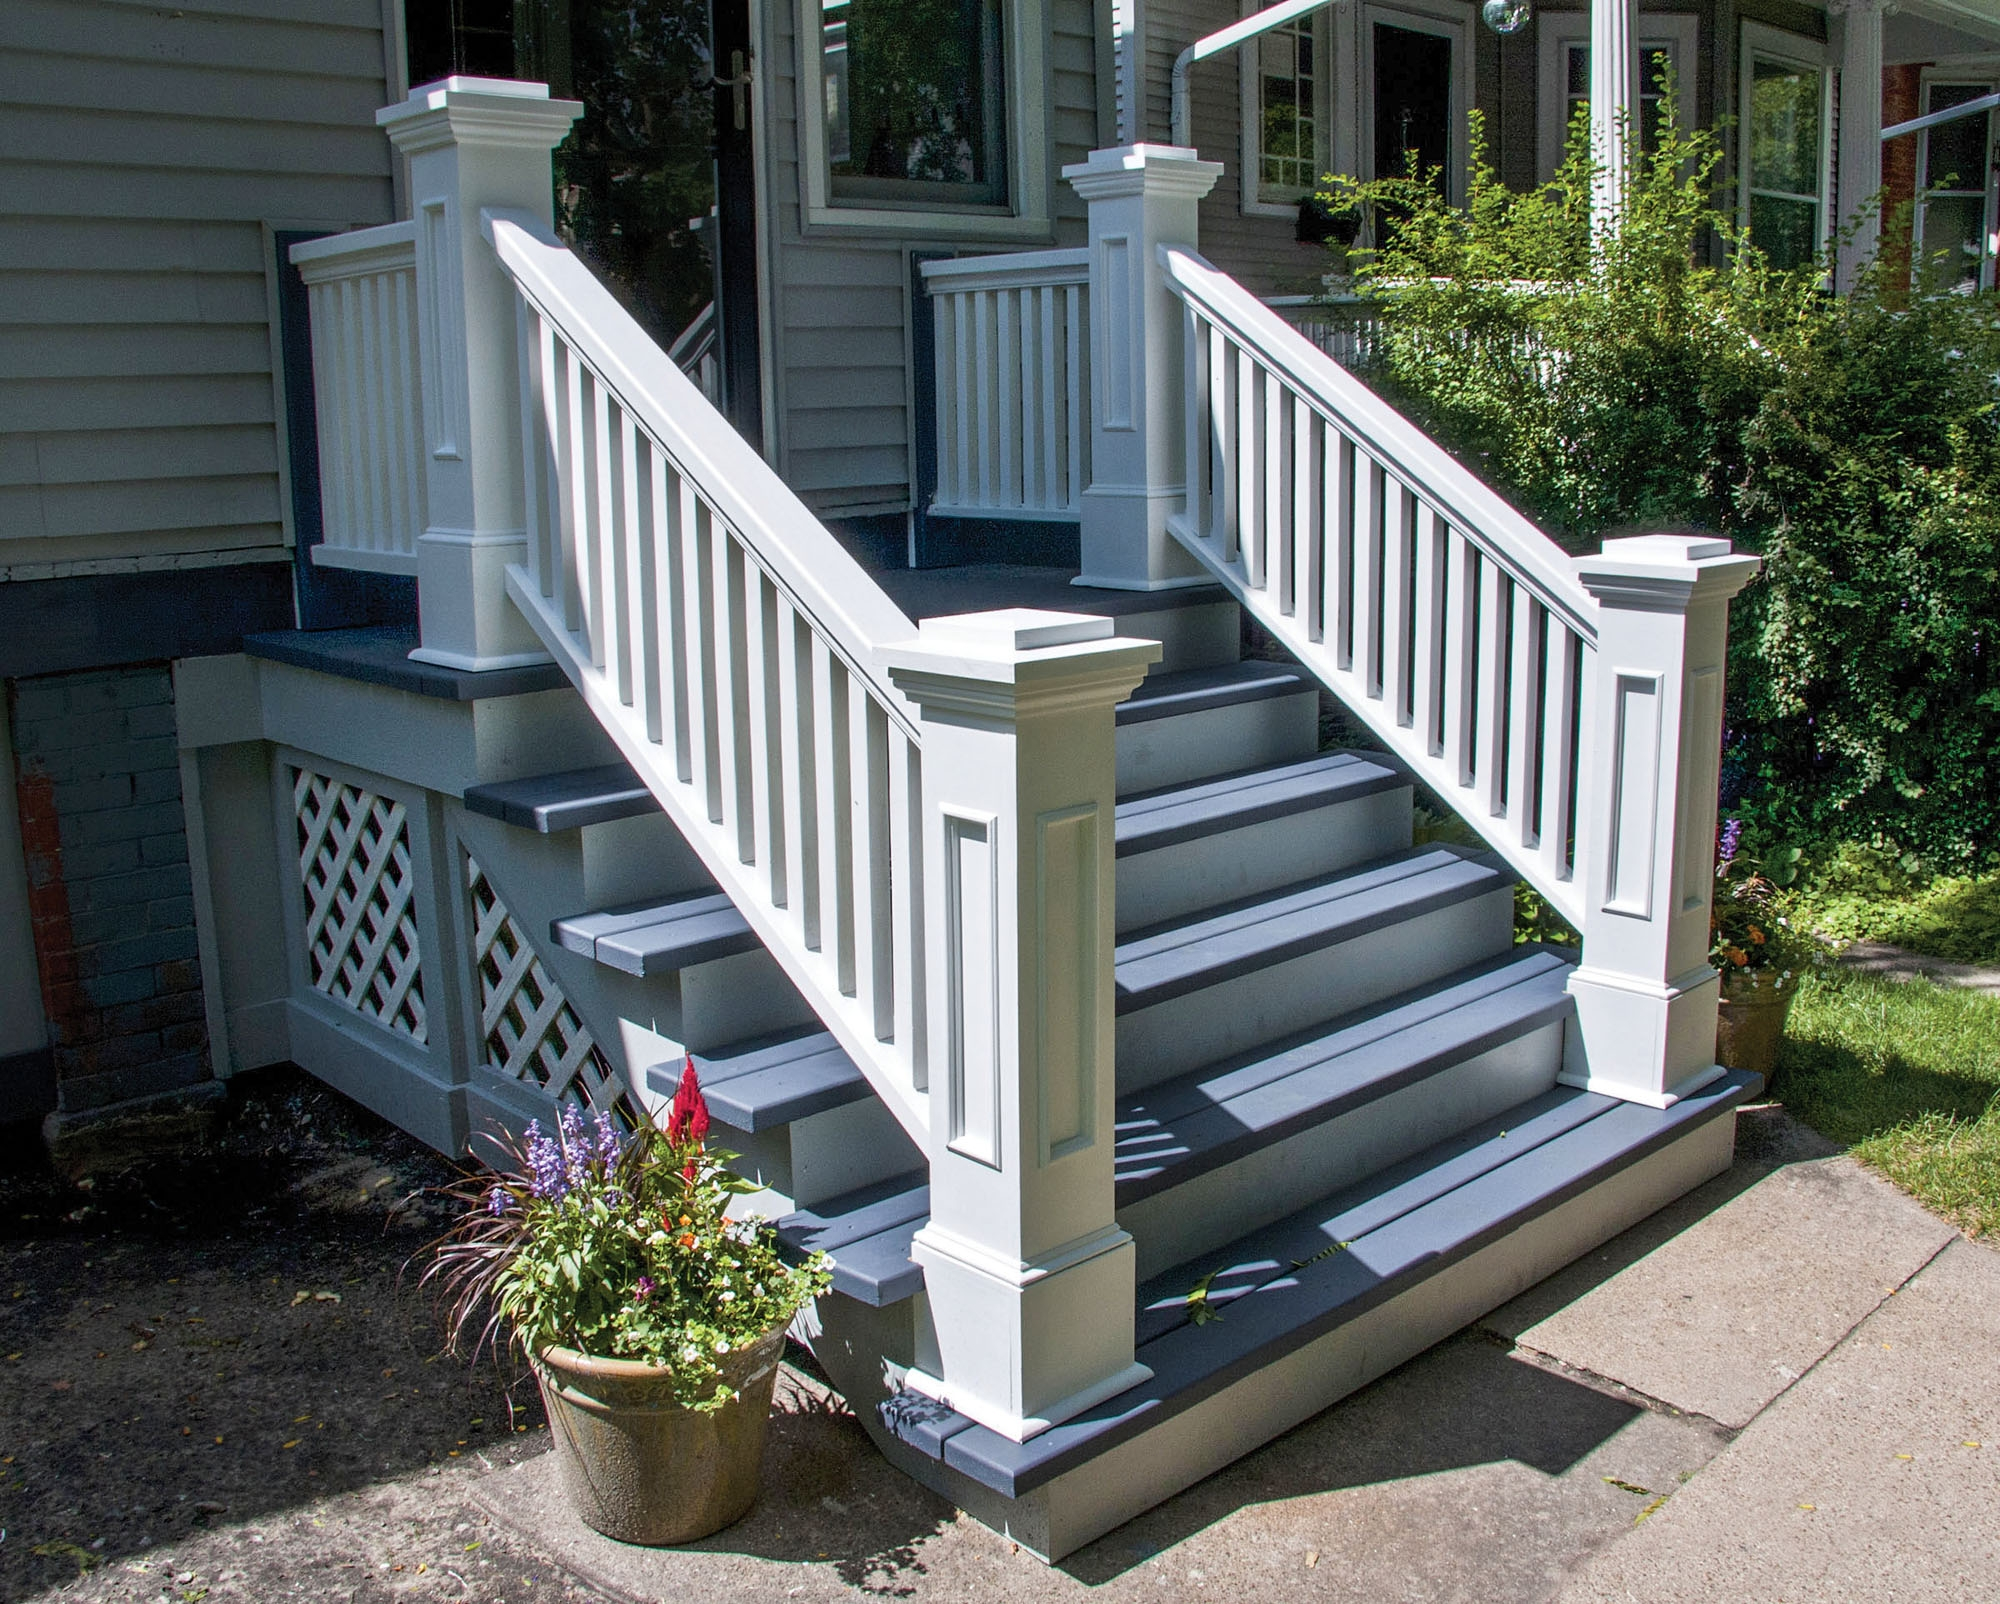 Graceful Stoops Entry Steps Old House Journal Magazine | Wooden Handrails For Outdoor Steps | Wall Mounted Wooden | Prefab | Lighting Outdoor | Deck | Outdoor Garden Path